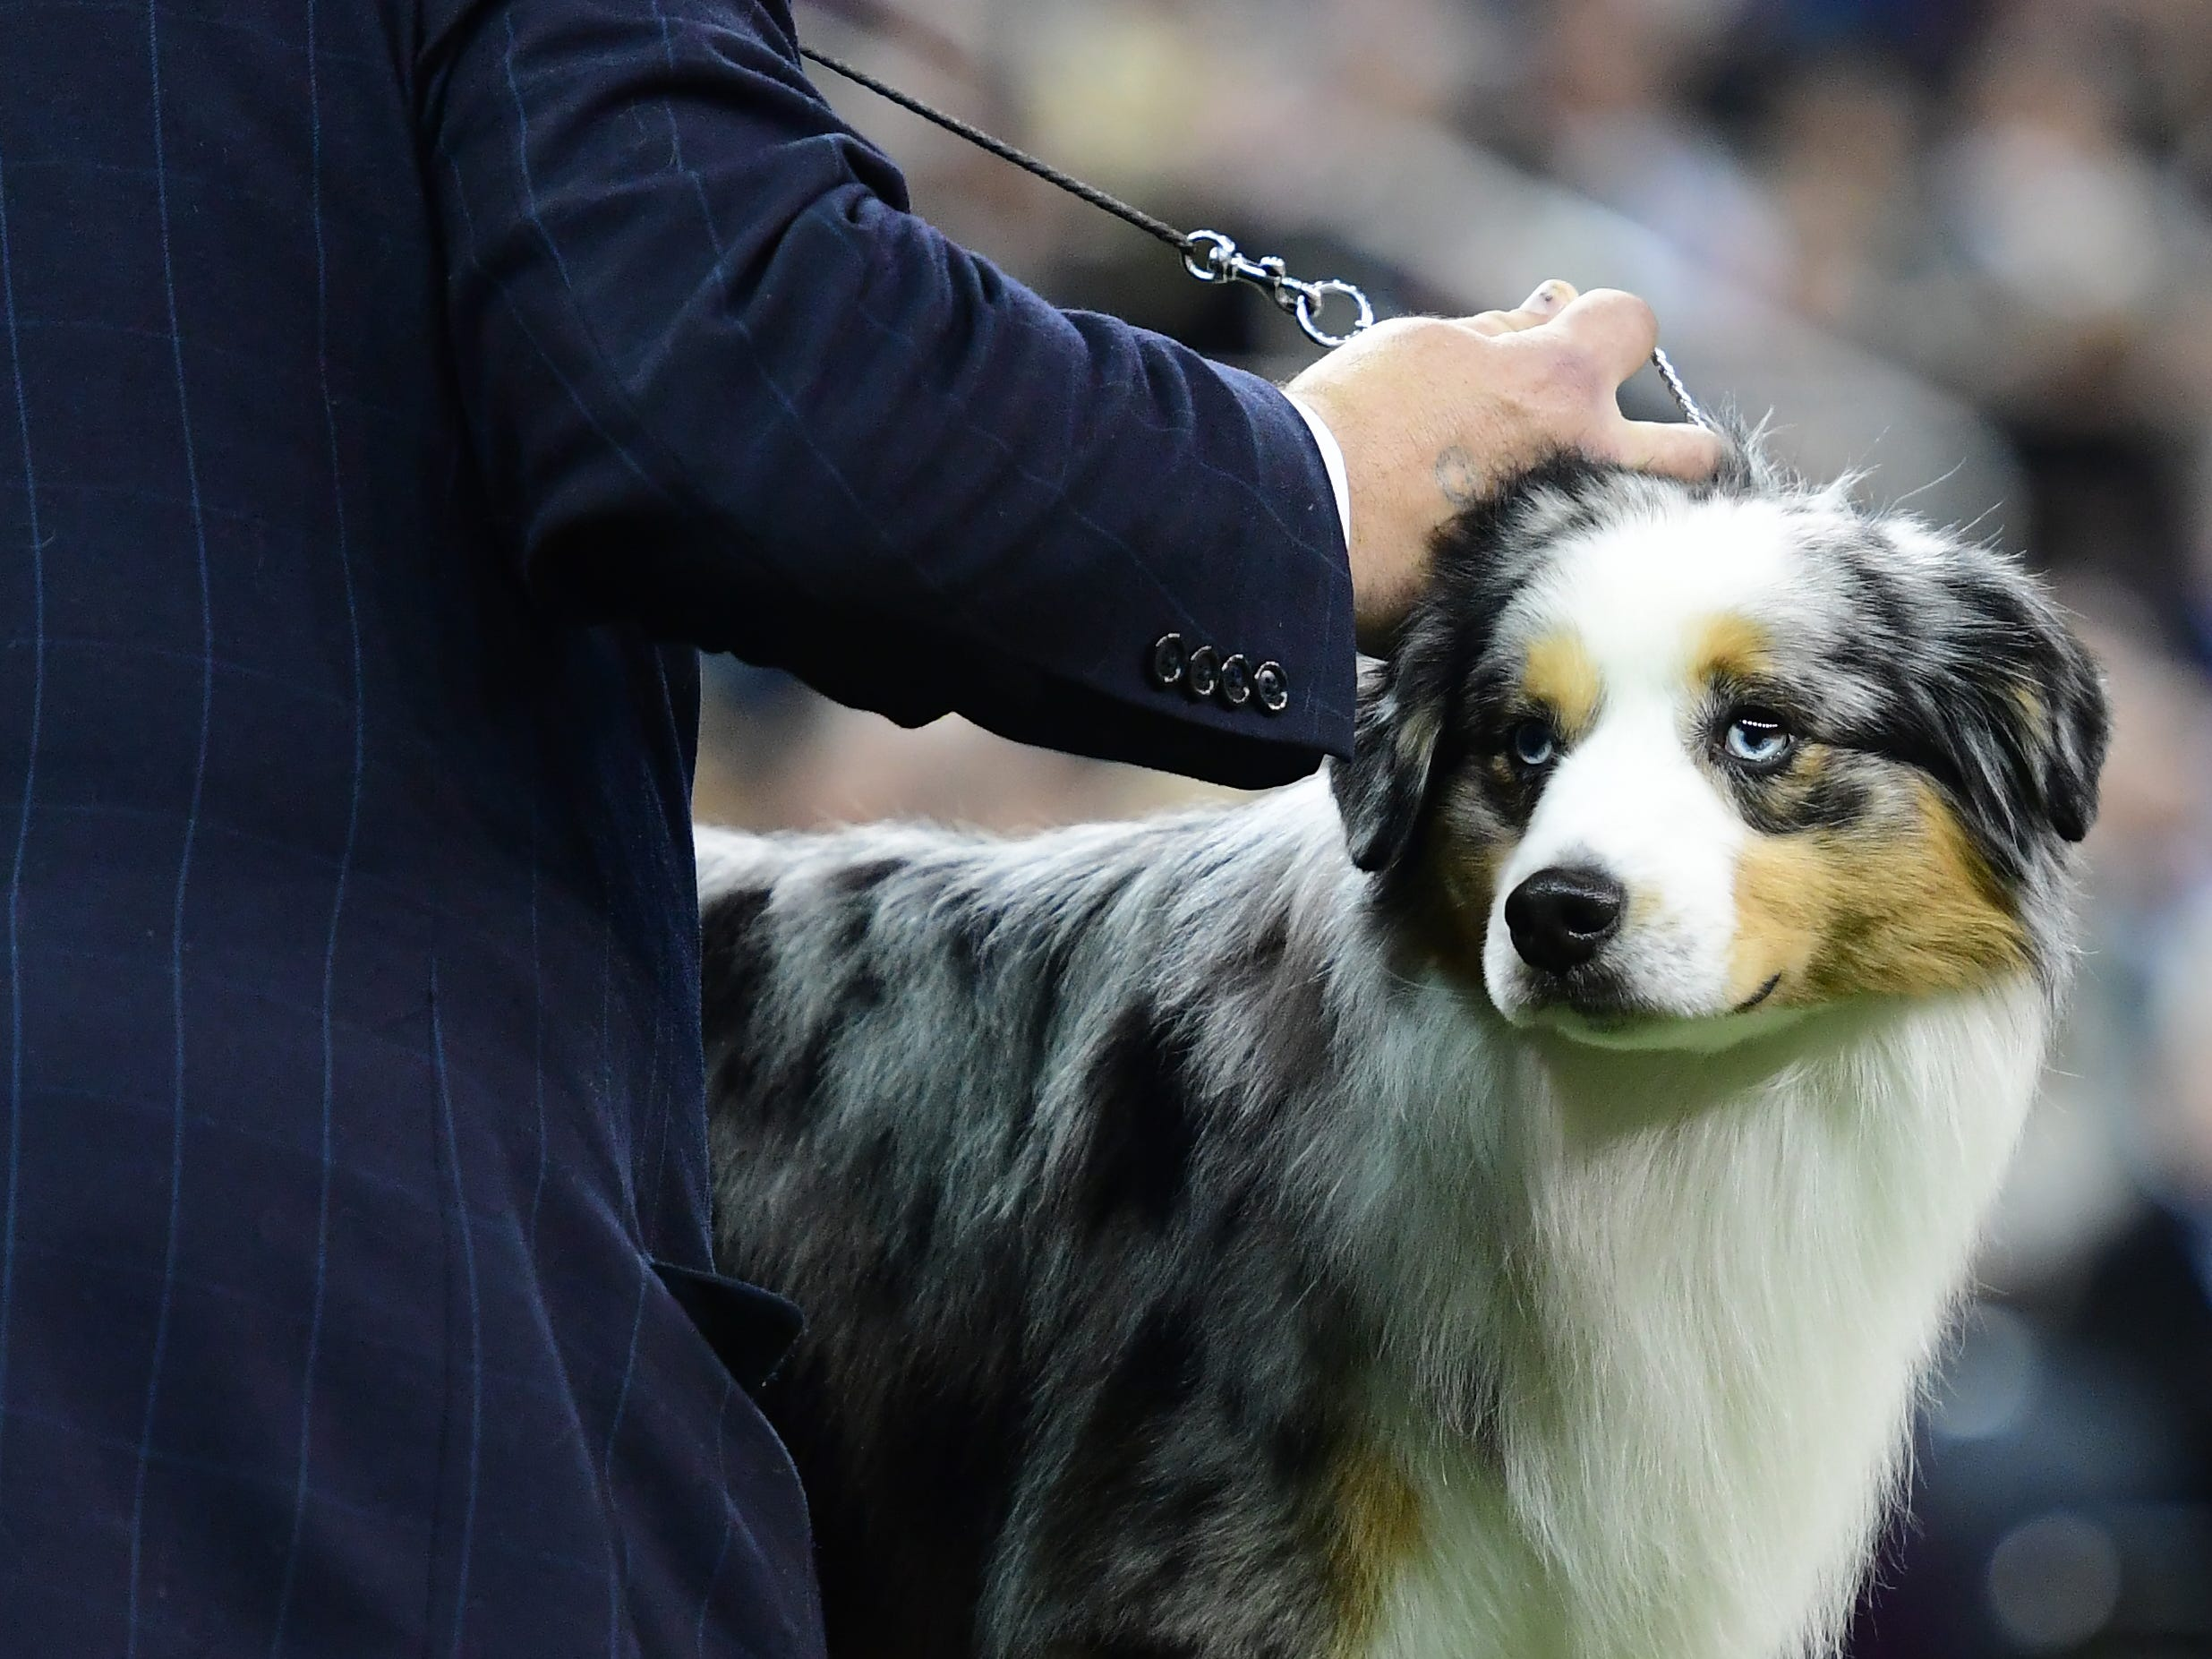 The Miniature American Shepherd 'Abingtons Way Out West' competes during the Herding Group judging at the 143rd Westminster Kennel Club Dog Show.